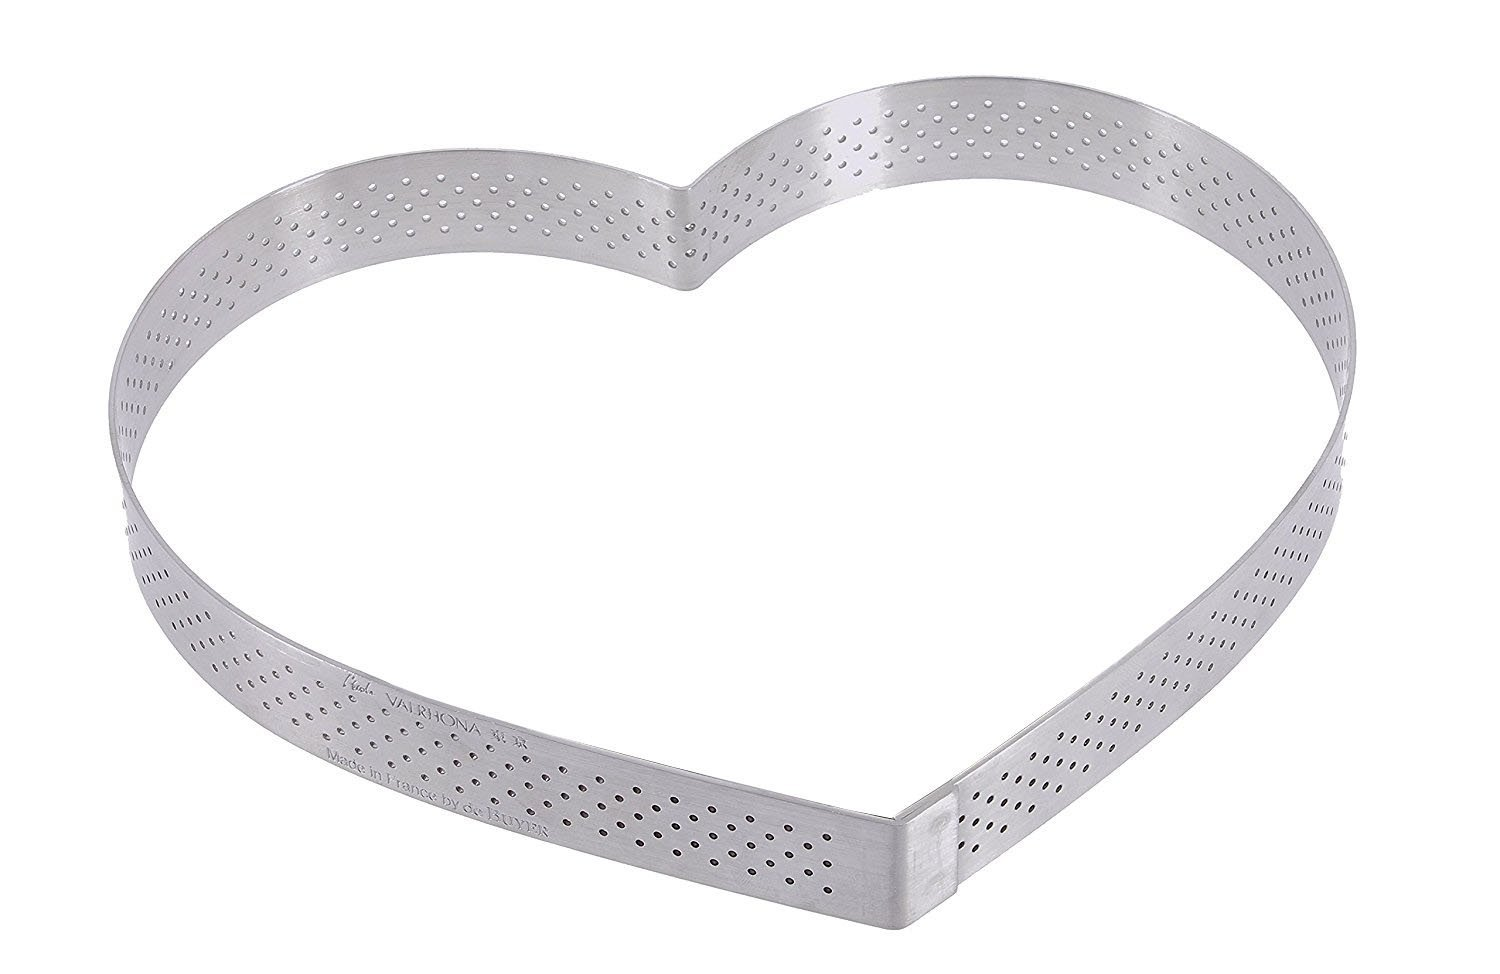 PERFORATED TART RING, Heart, in Stainless Steel, 0.75-Inch high O 8.75-Inch